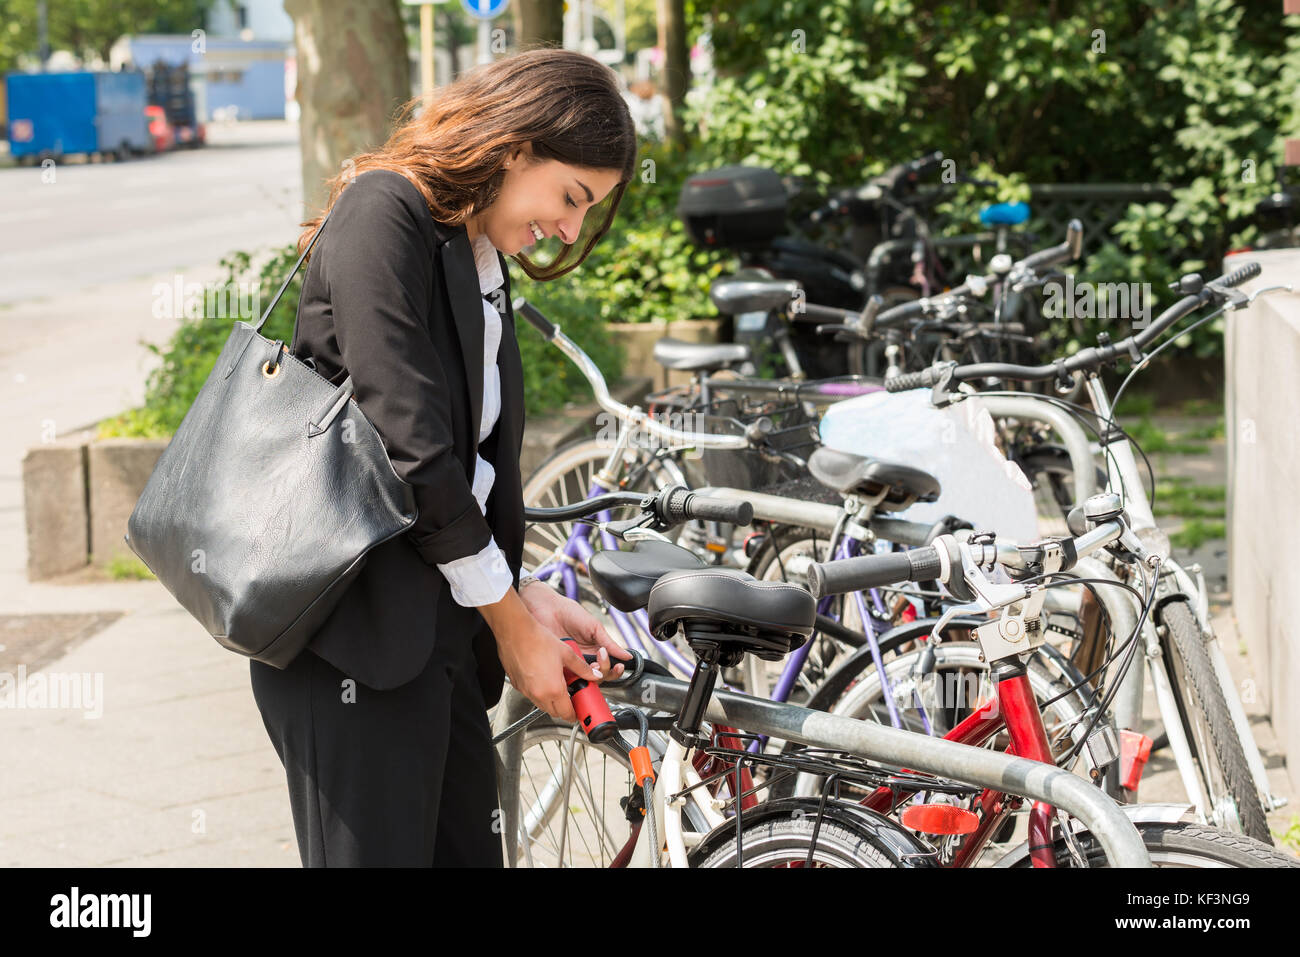 Smiling Young Businesswoman With Handbag Locking Up Her Bicycle - Stock Image